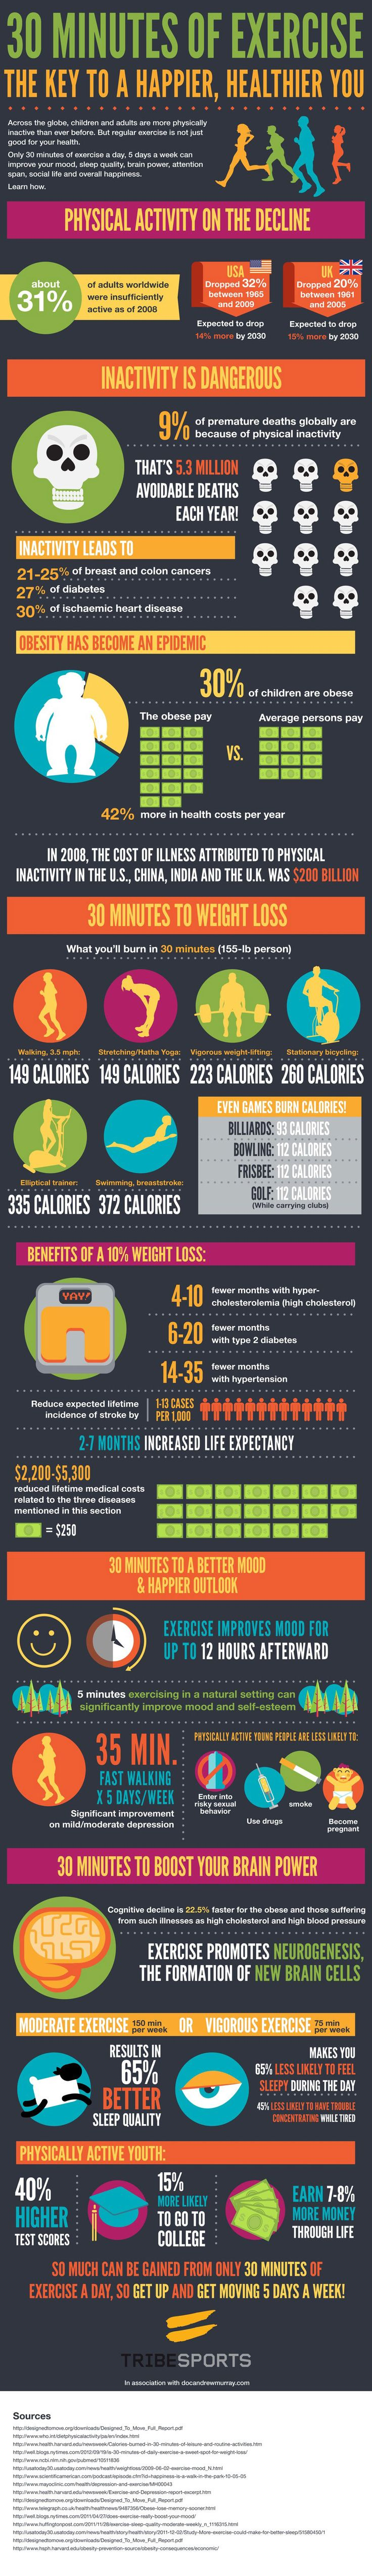 30 Minutes Of Exercise Infographic   #e-pill #epill   e-pill Medication Reminders  www.epill.com